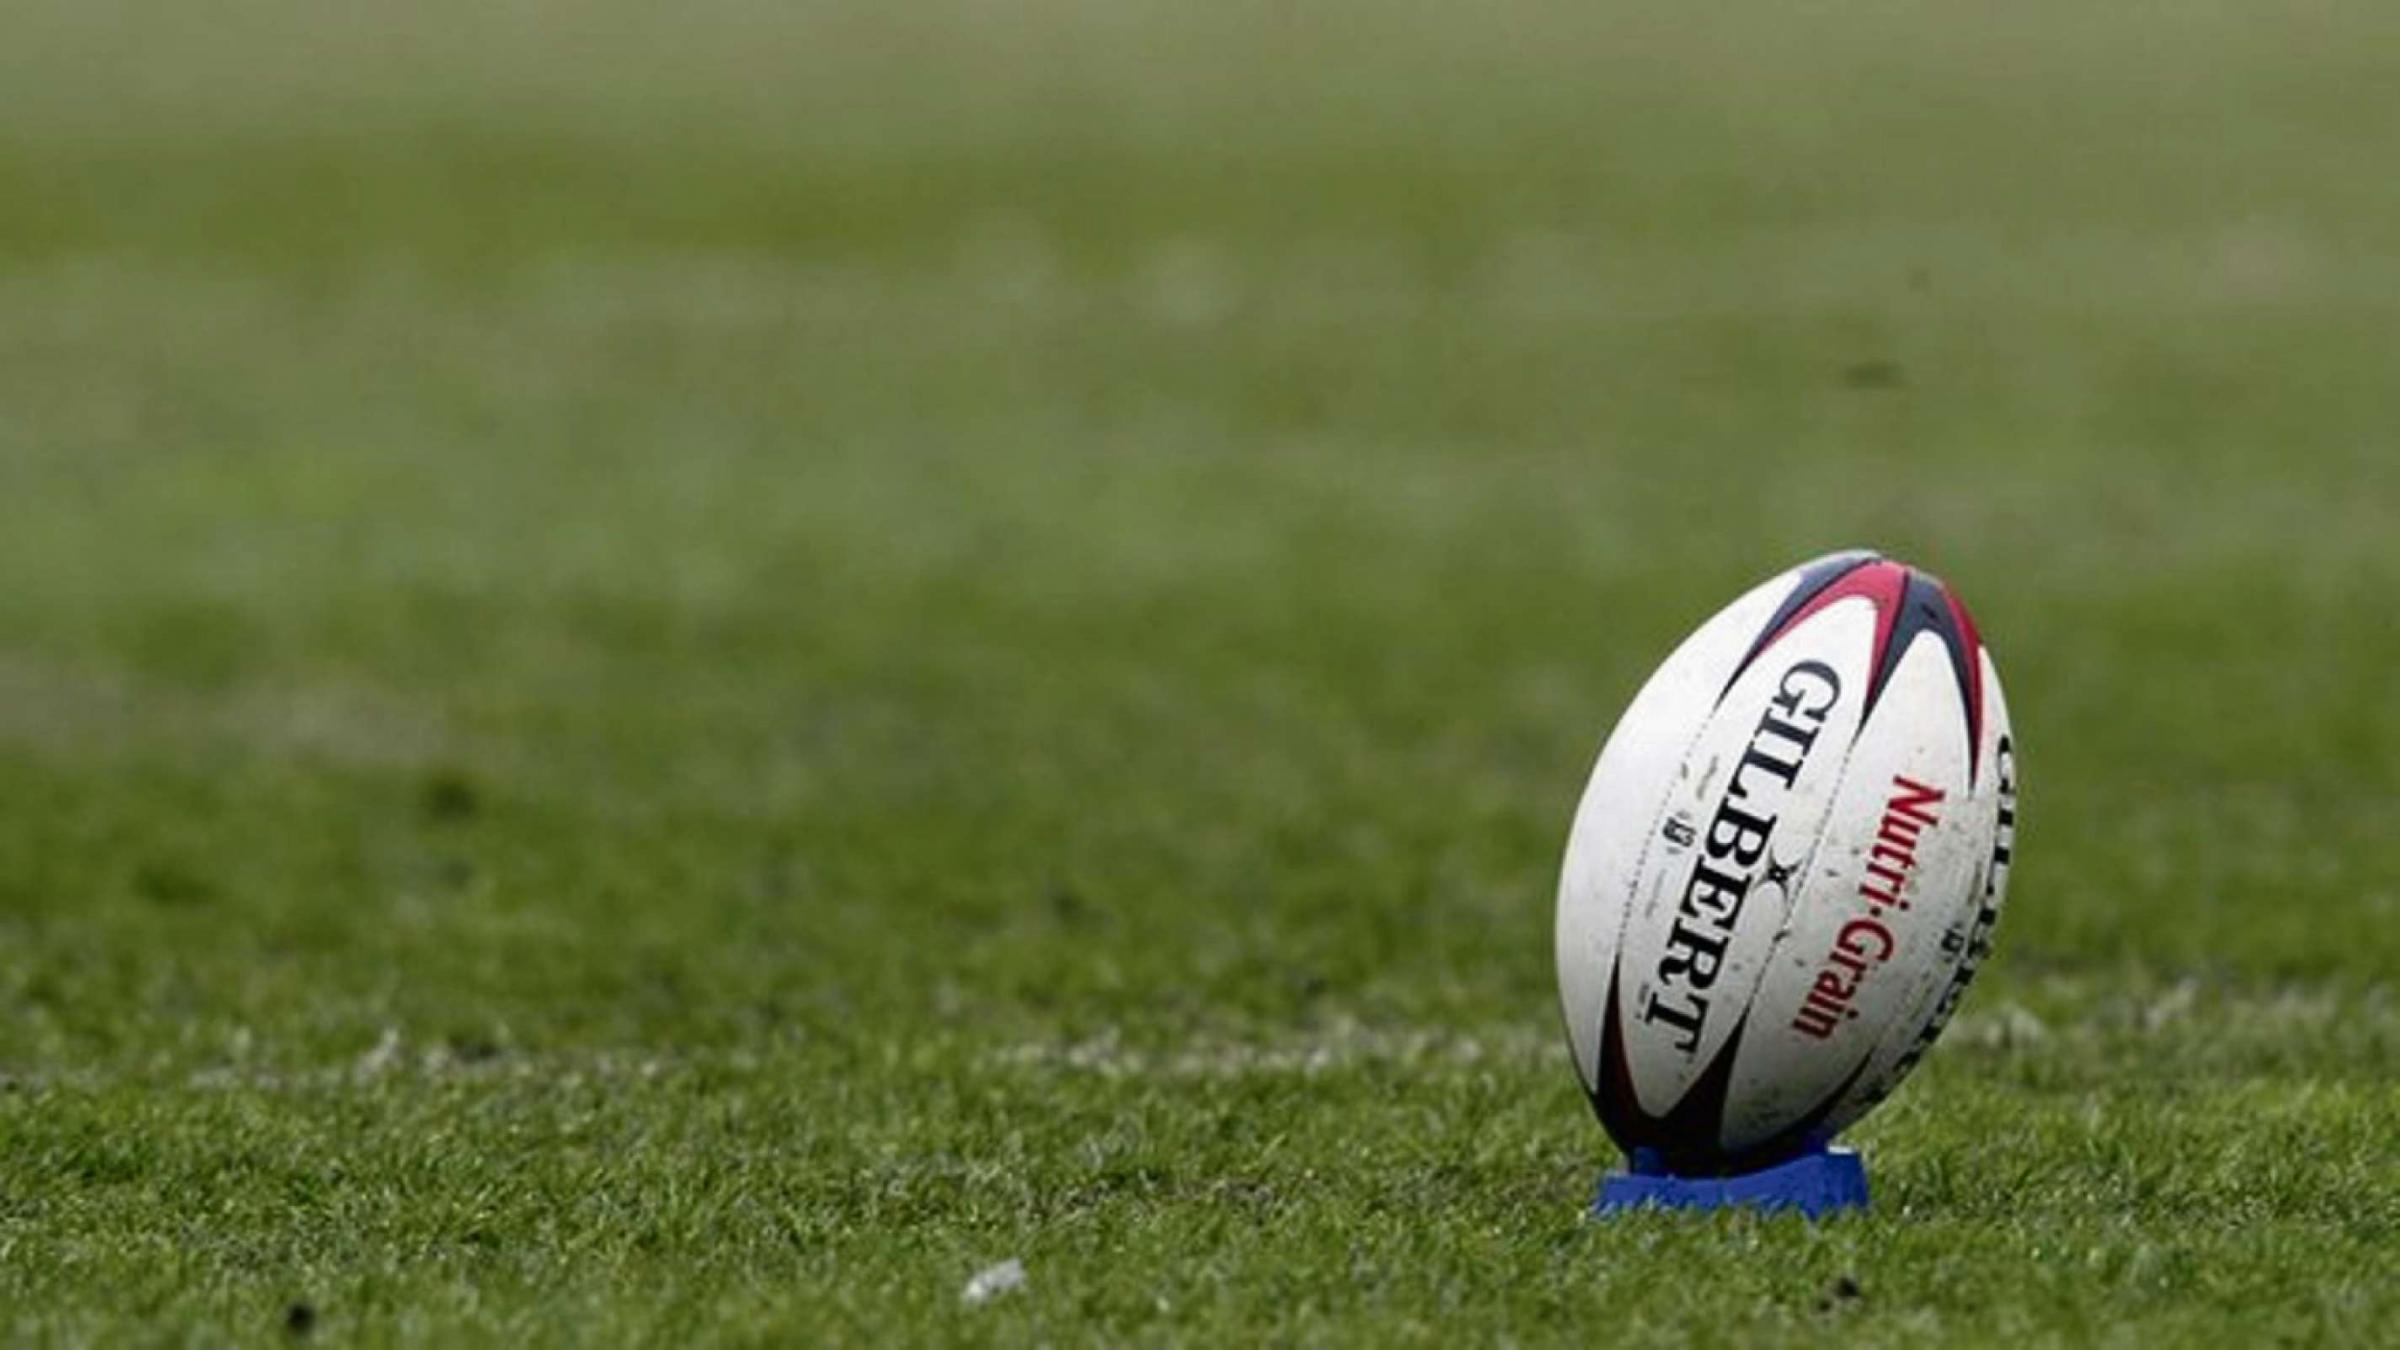 MUST TRY HARDER: Penybanc and Hendy shared a dozen tries in the All Wales Sport third division.